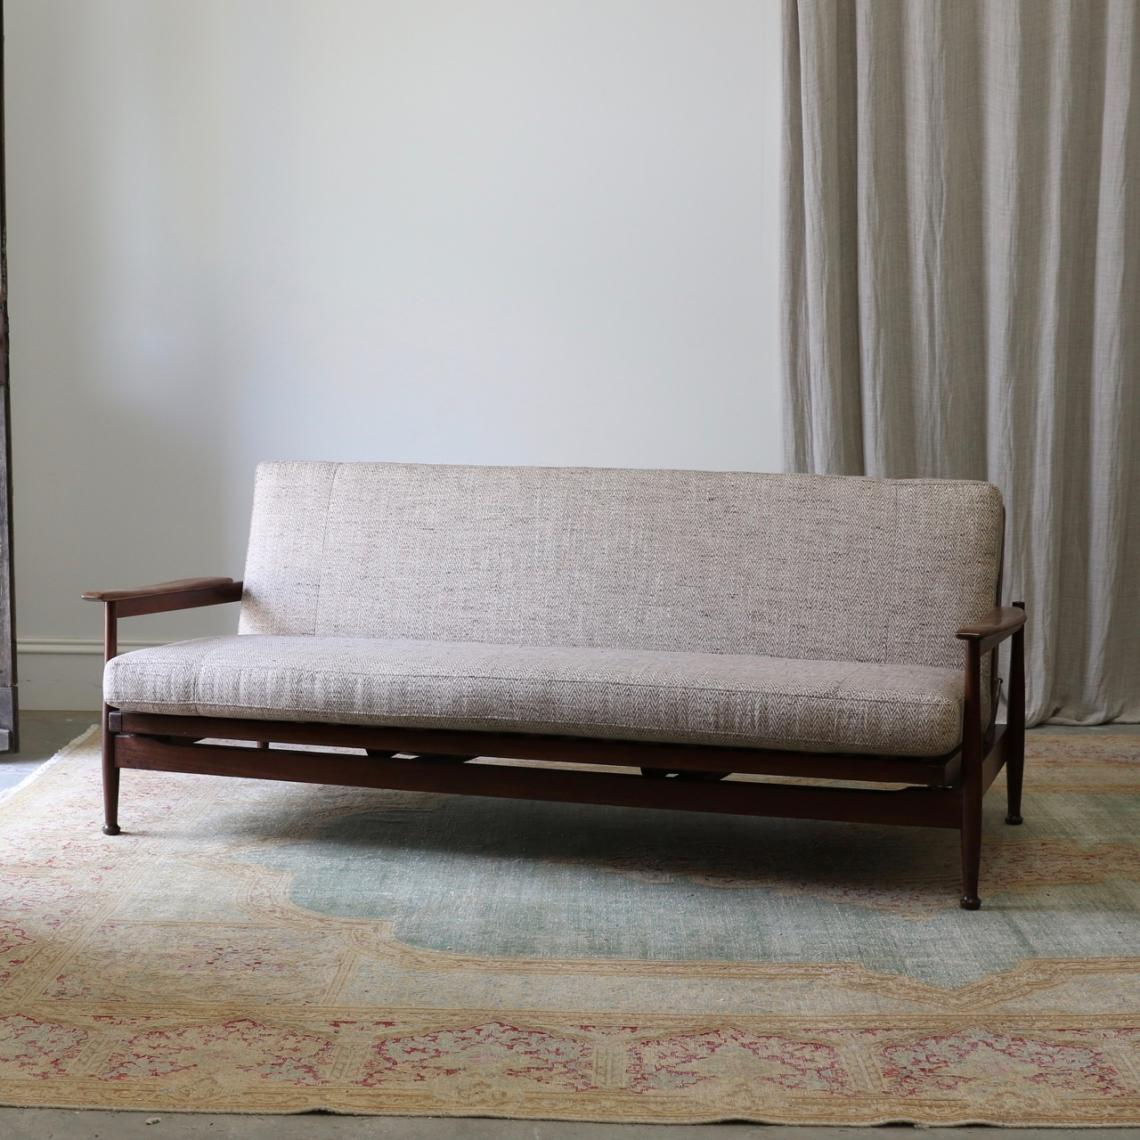 113-99 - Mid-Century Sofa / Daybed